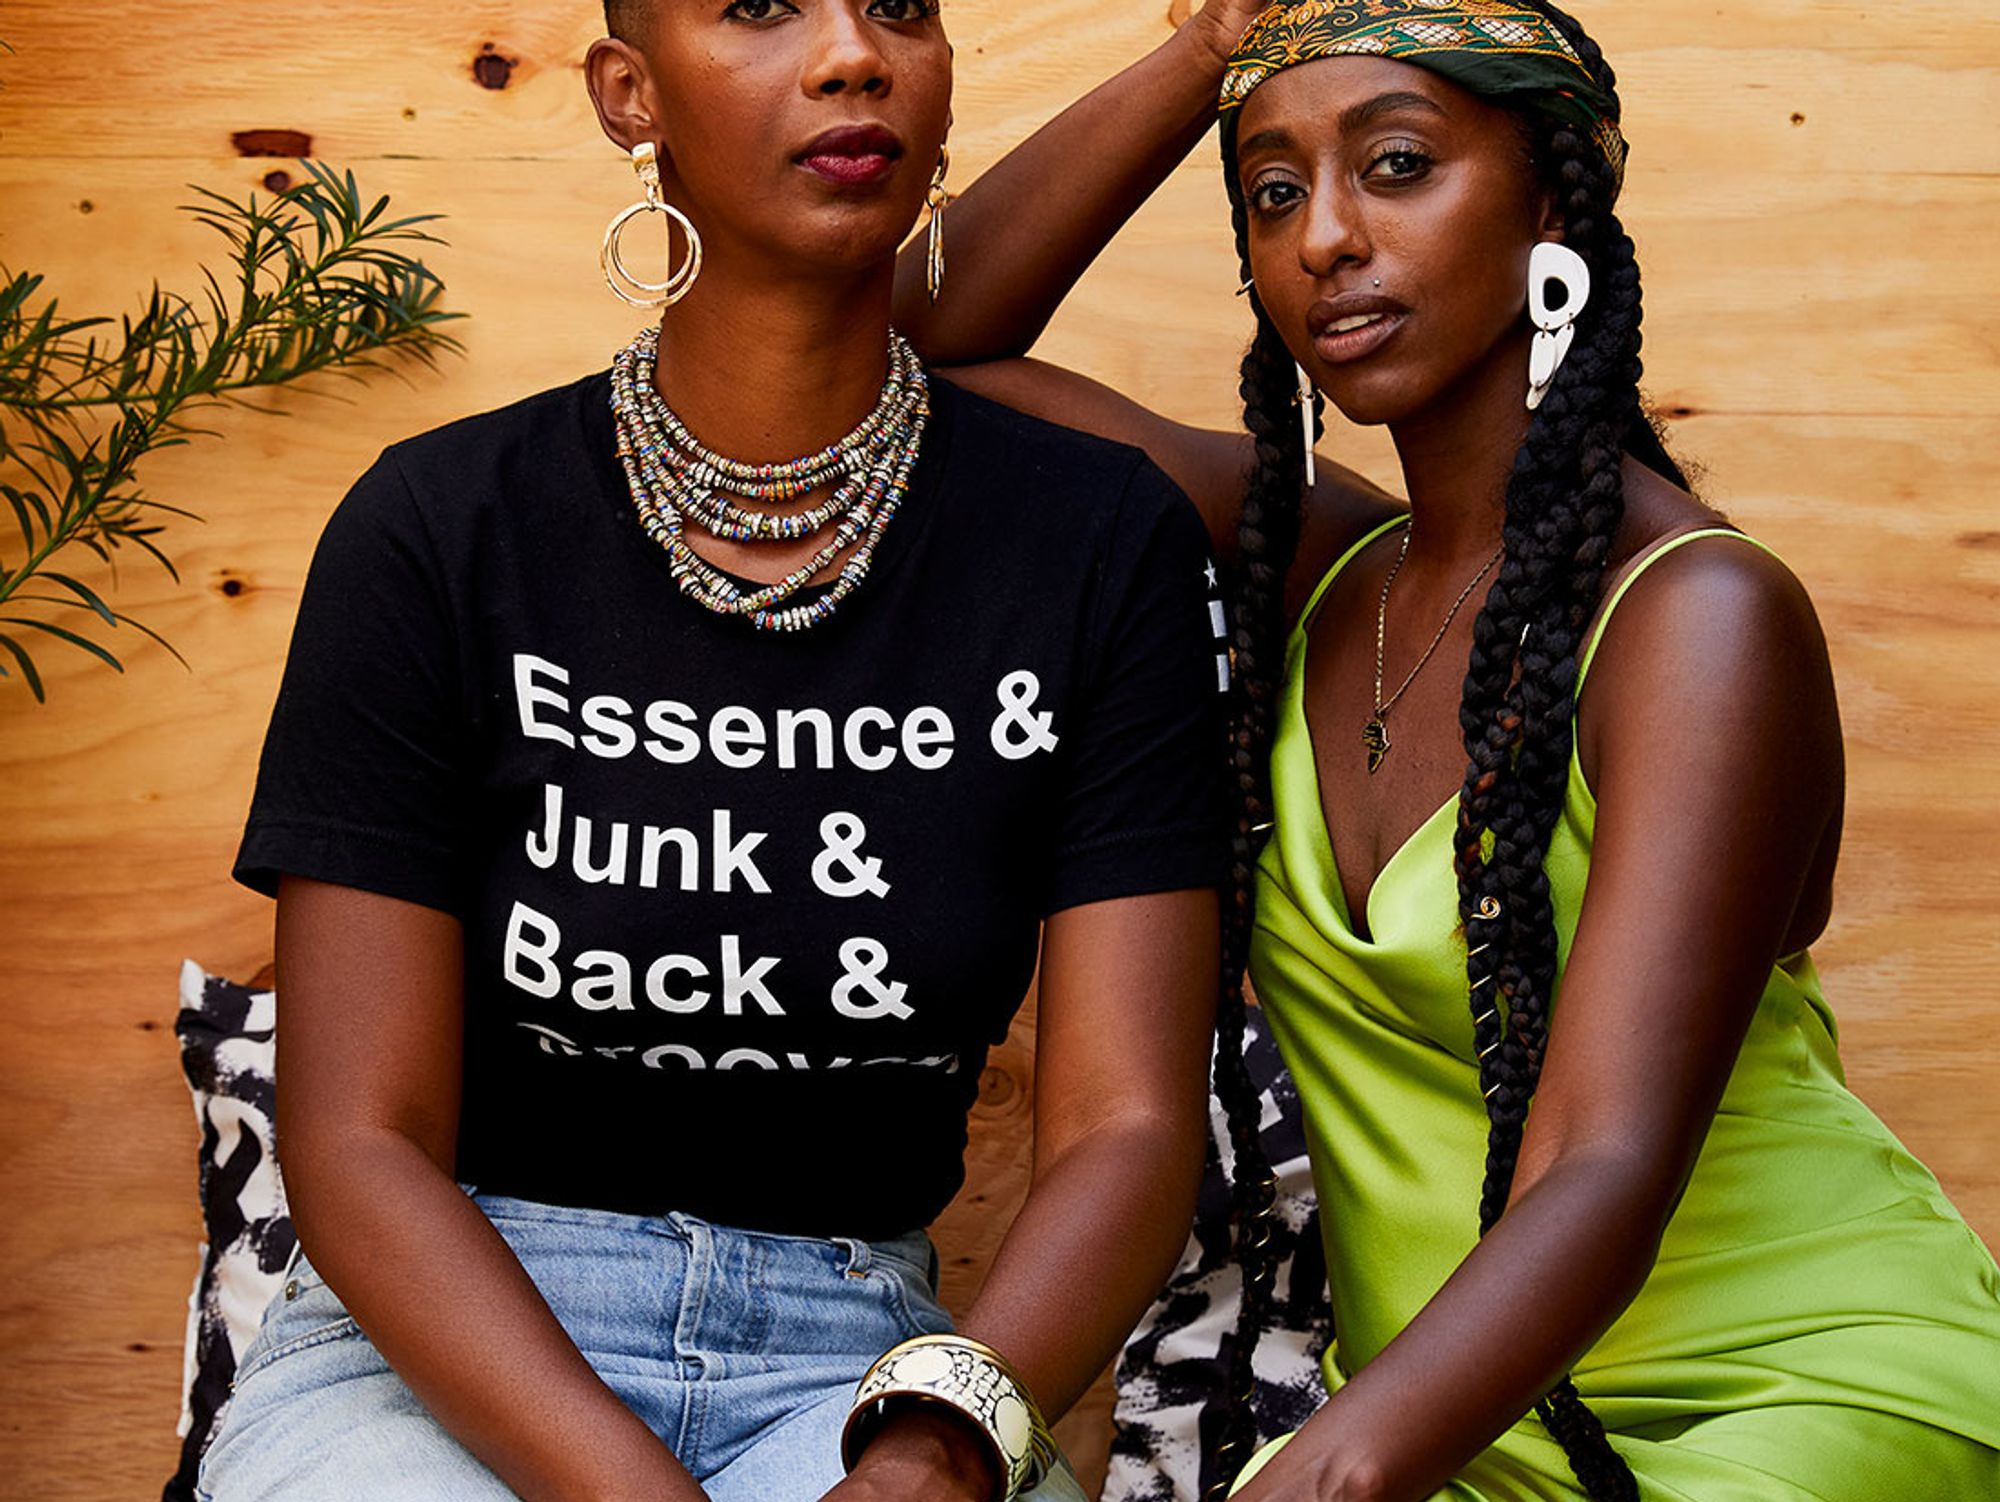 Blk Girls Green House is About Growth, Activism and, Yes, Plant Lady Goals